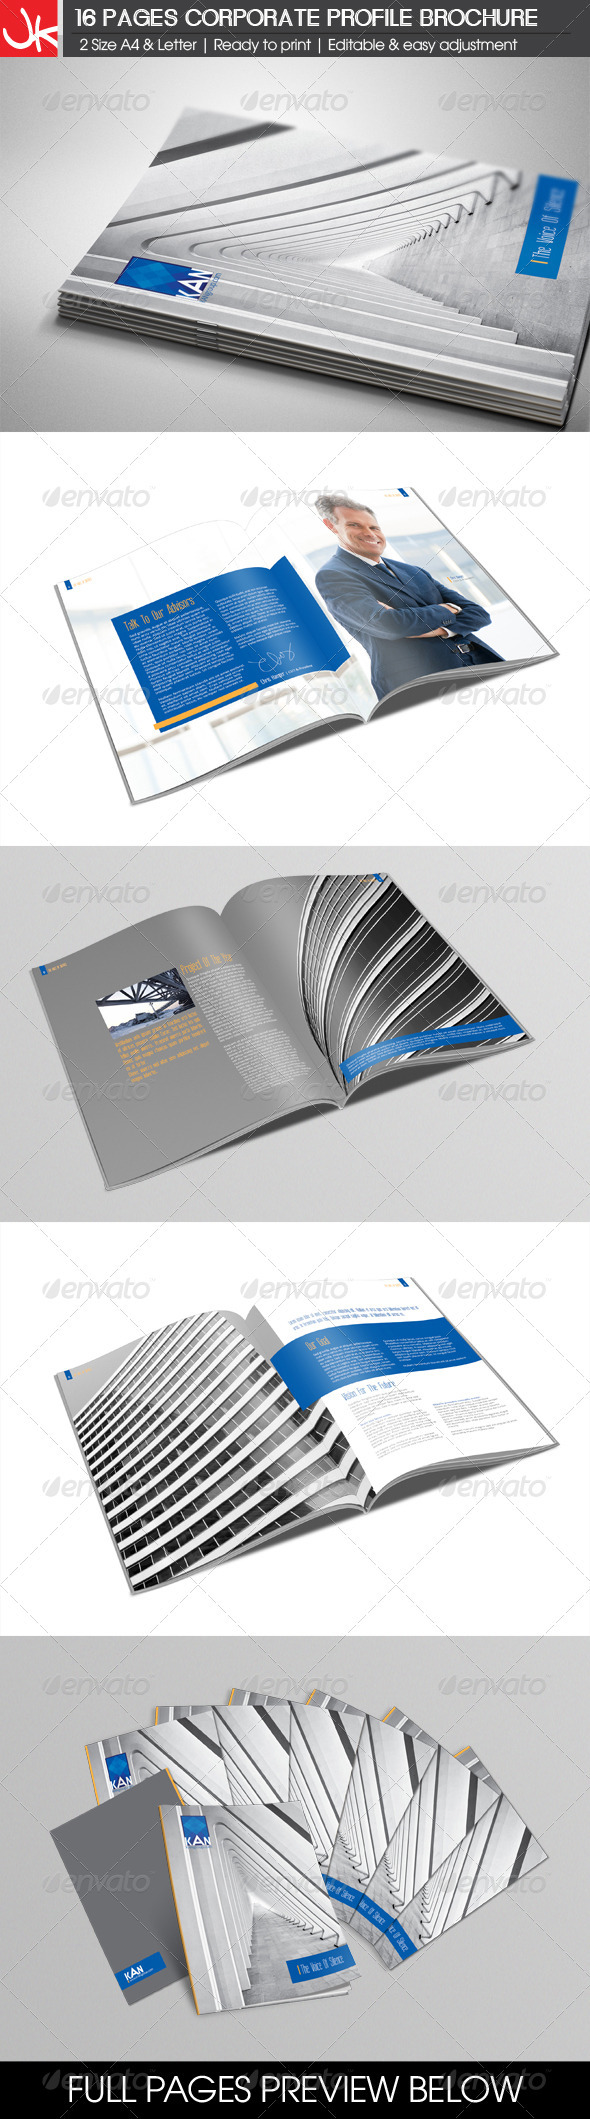 16 Pages Corporate Profile Brochure - Corporate Brochures